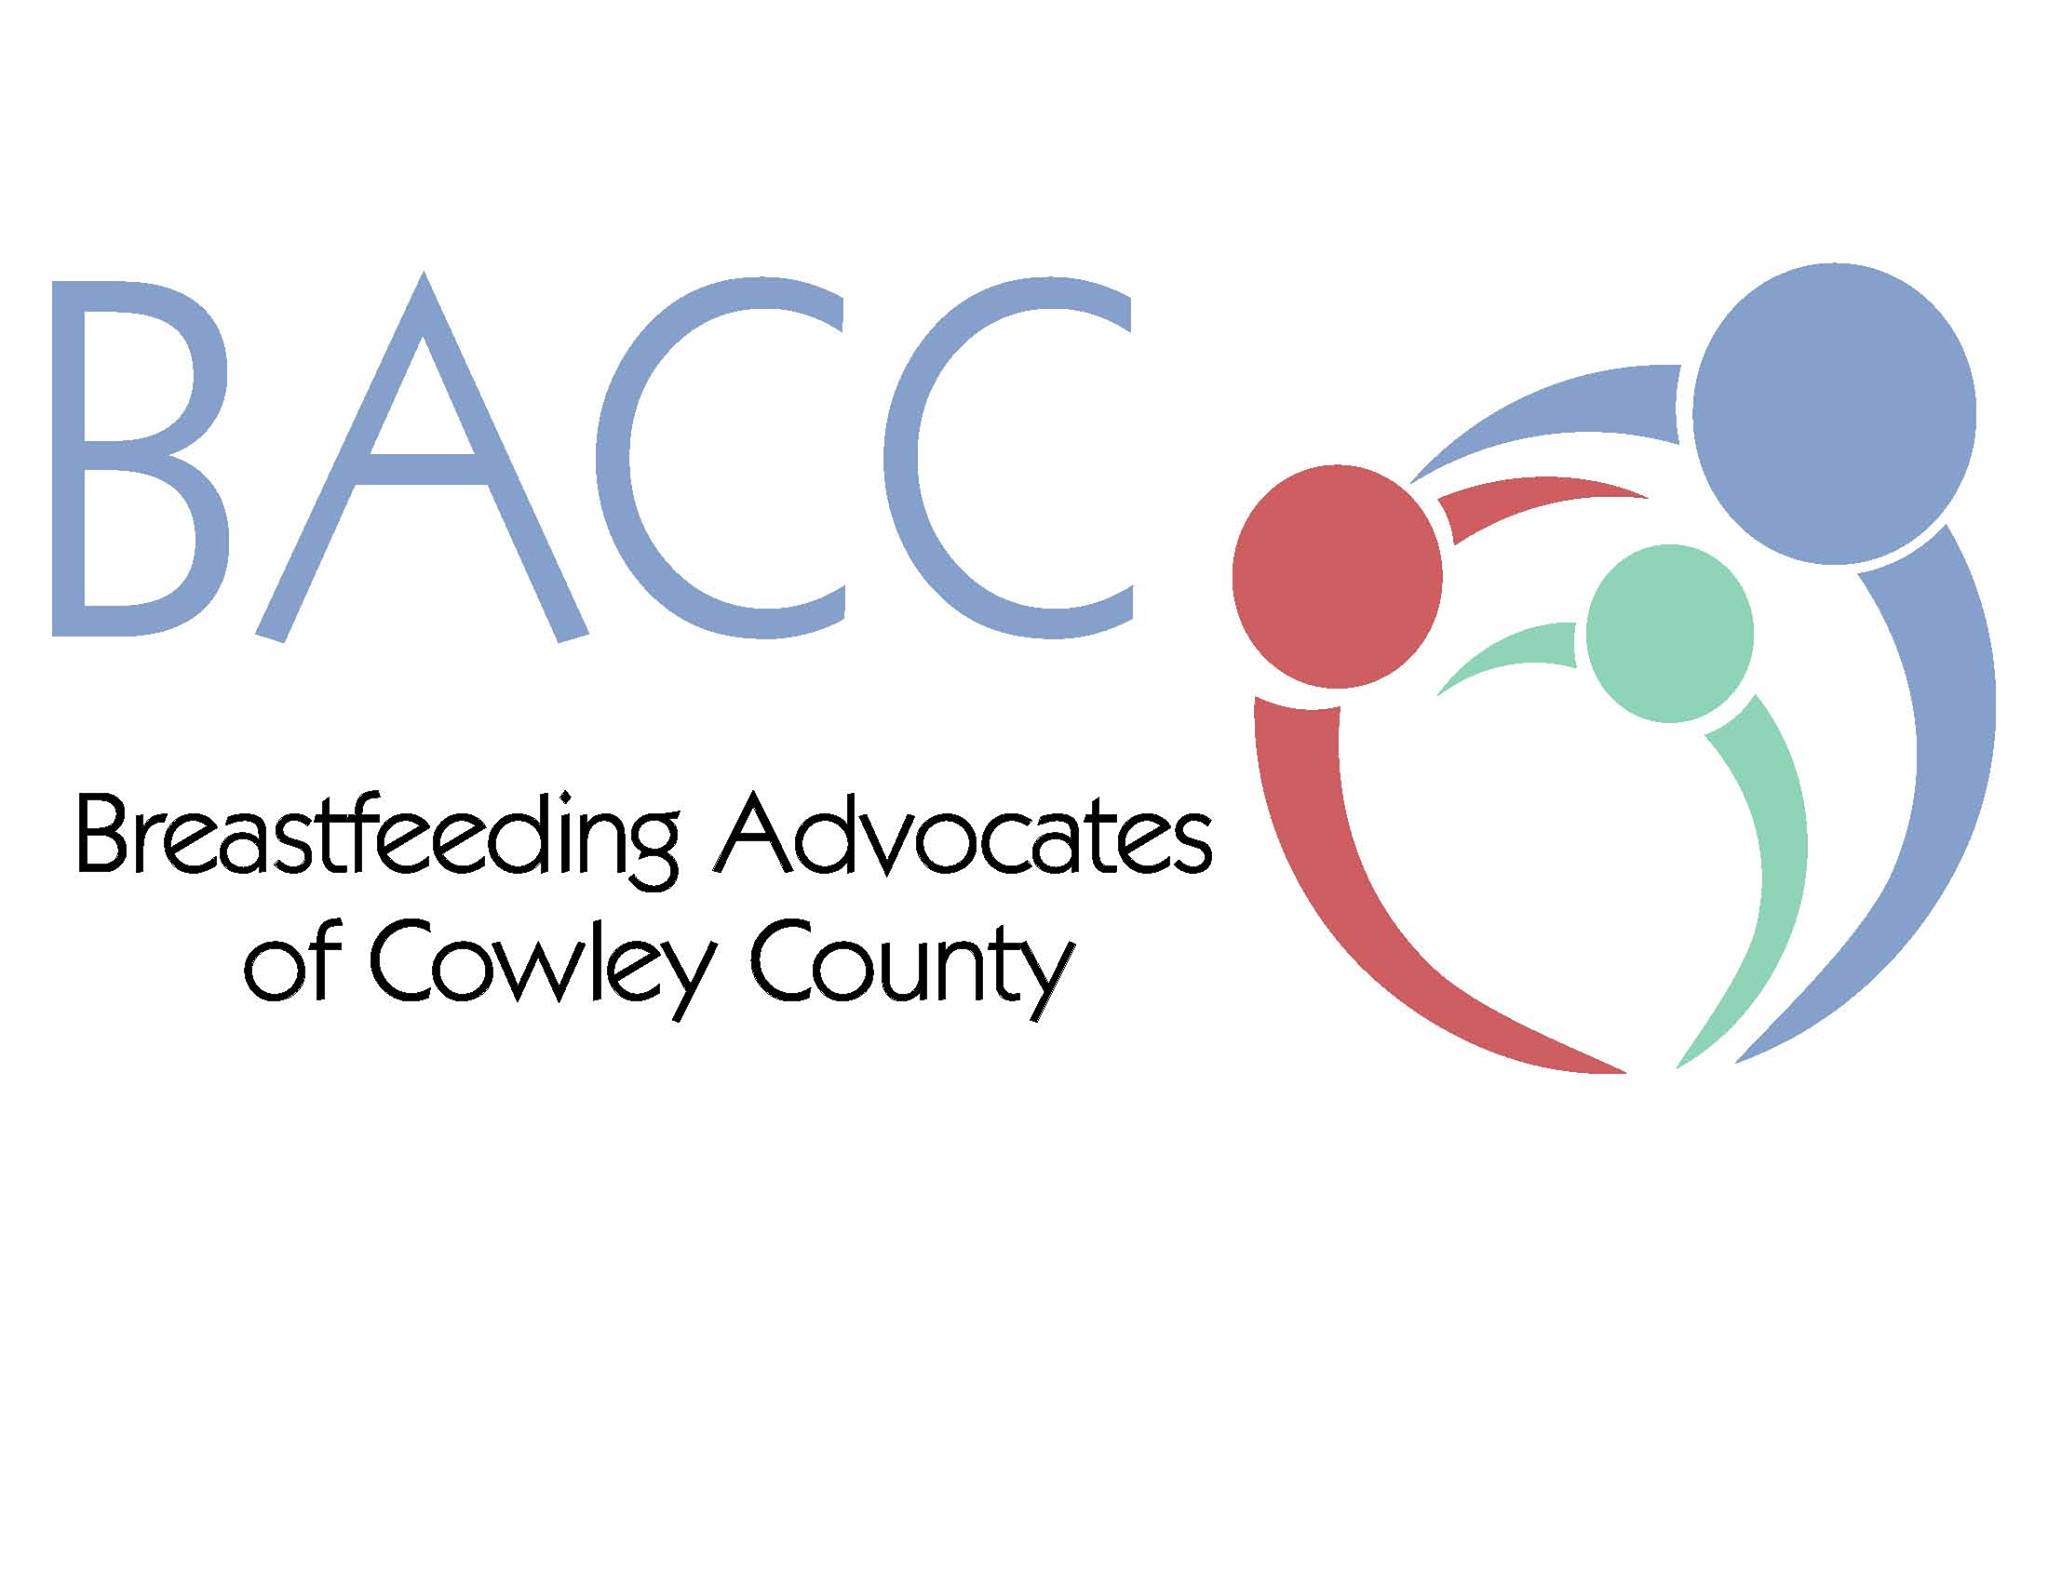 https://www.facebook.com/pg/Breastfeeding-Advocates-of-Cowley-County-BACC-790074804434430/about/?ref=page_internal